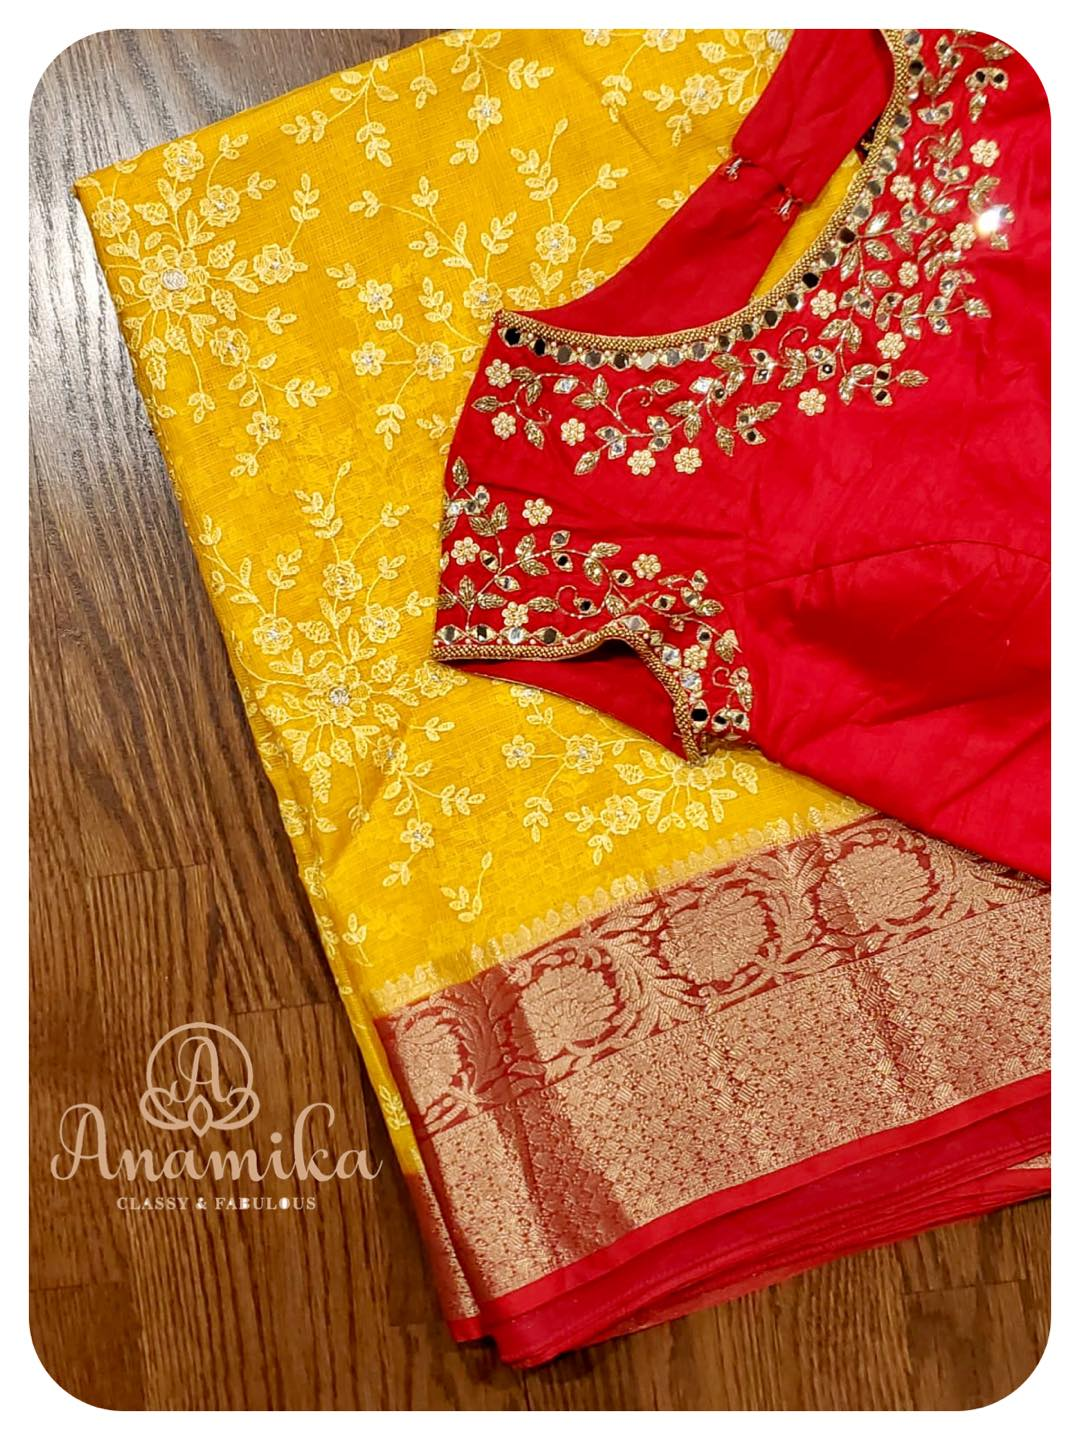 Chikankari work on Kota silk saree – with kanchi border in bright and elegant colors of yellow and red.  DM 360-545-3636 for inquiries 2021-04-21